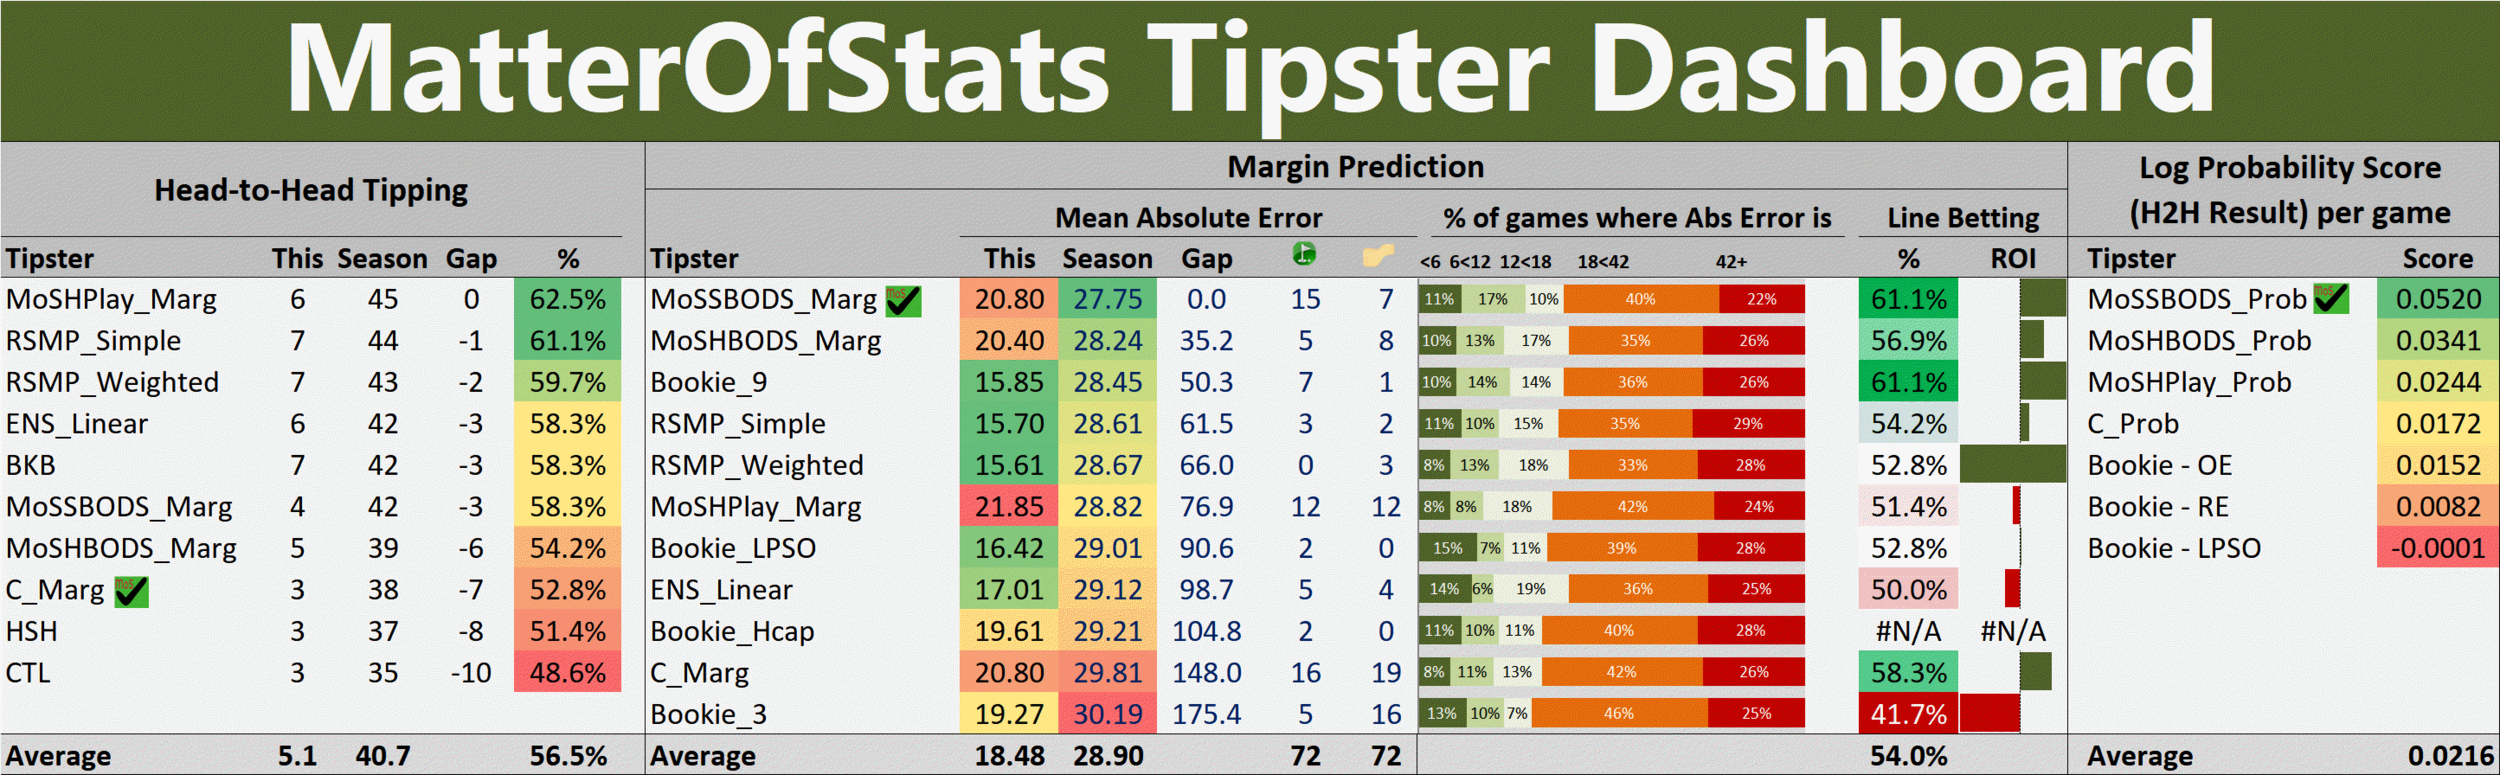 R8 - Tipster Dashboard.png